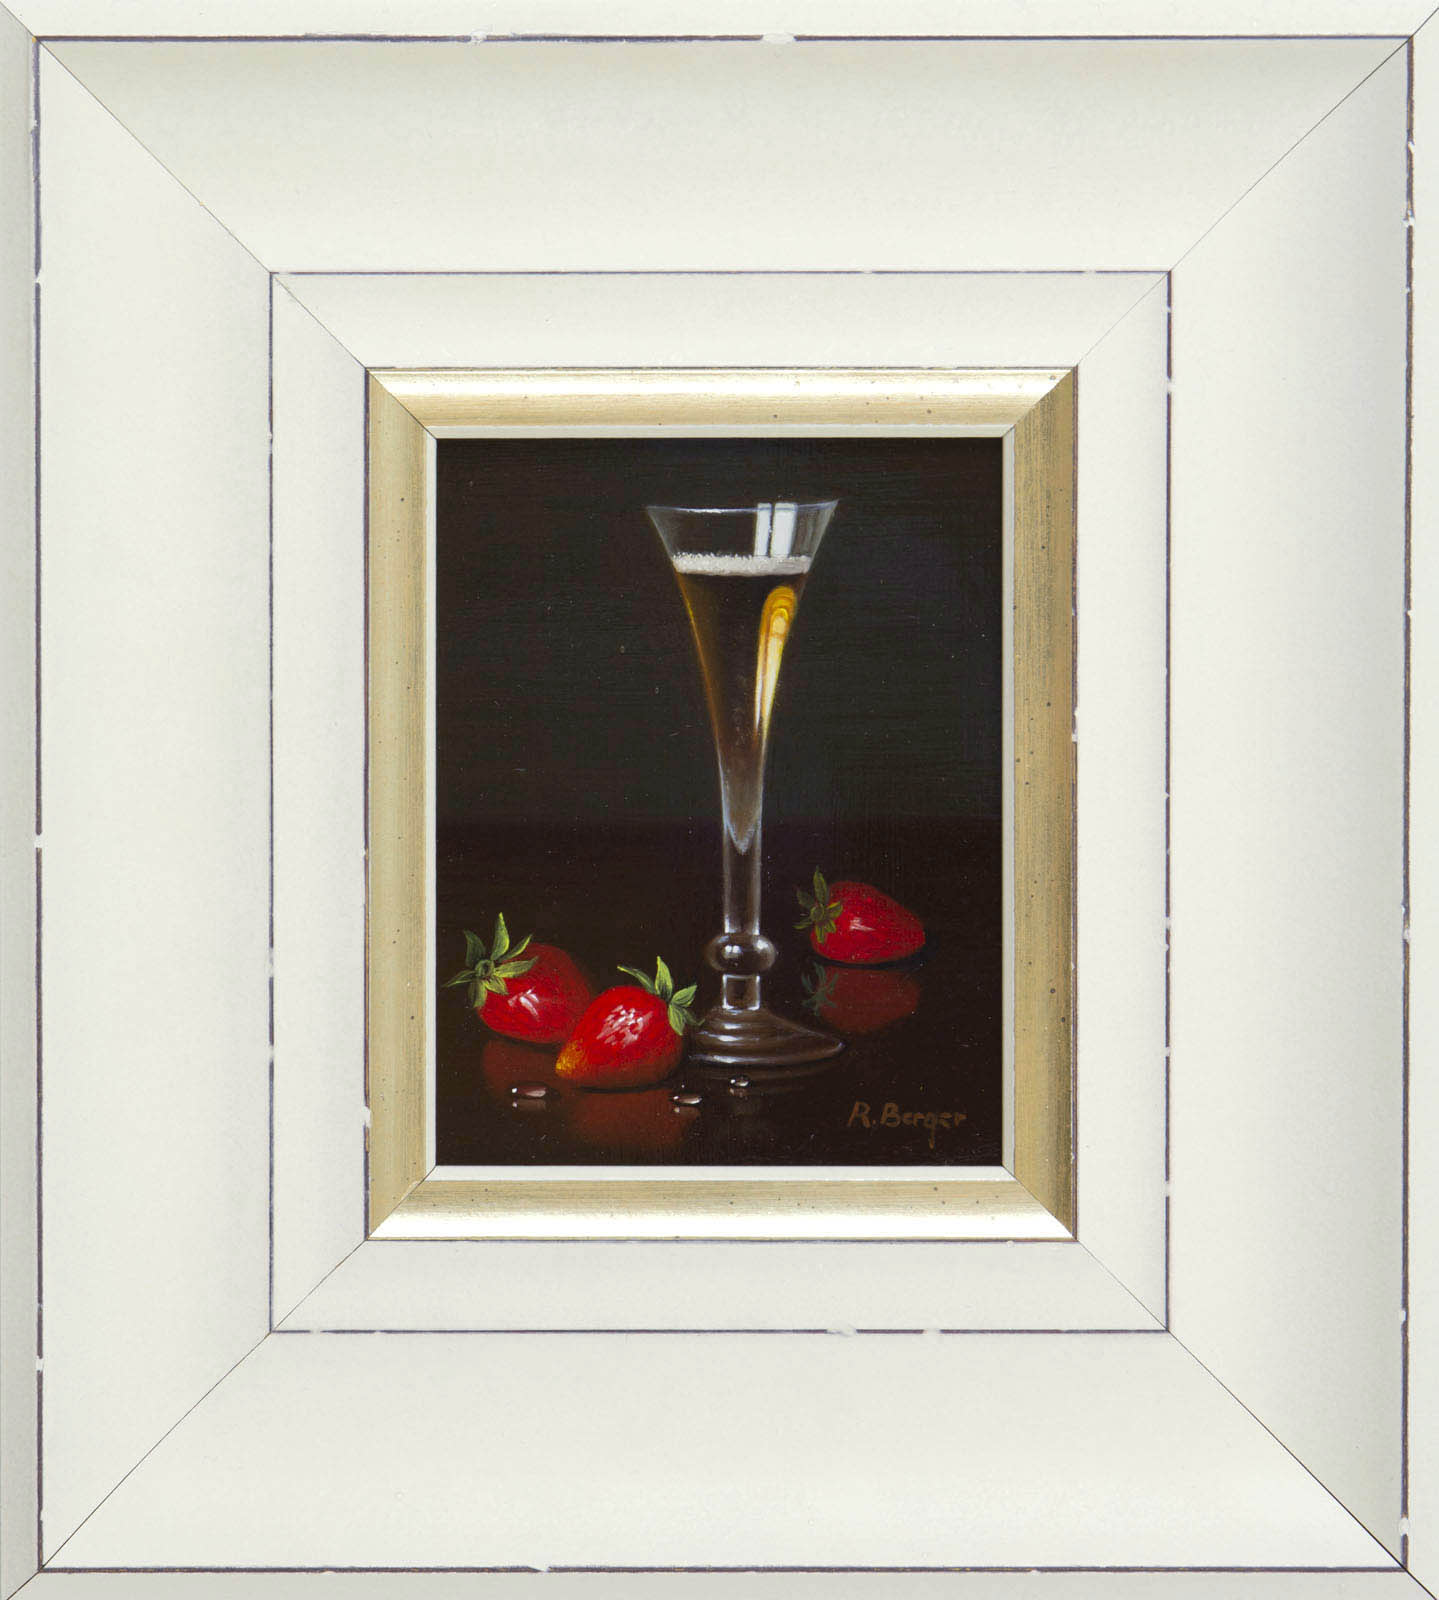 Strawberries & Champagne, Ronald Berger